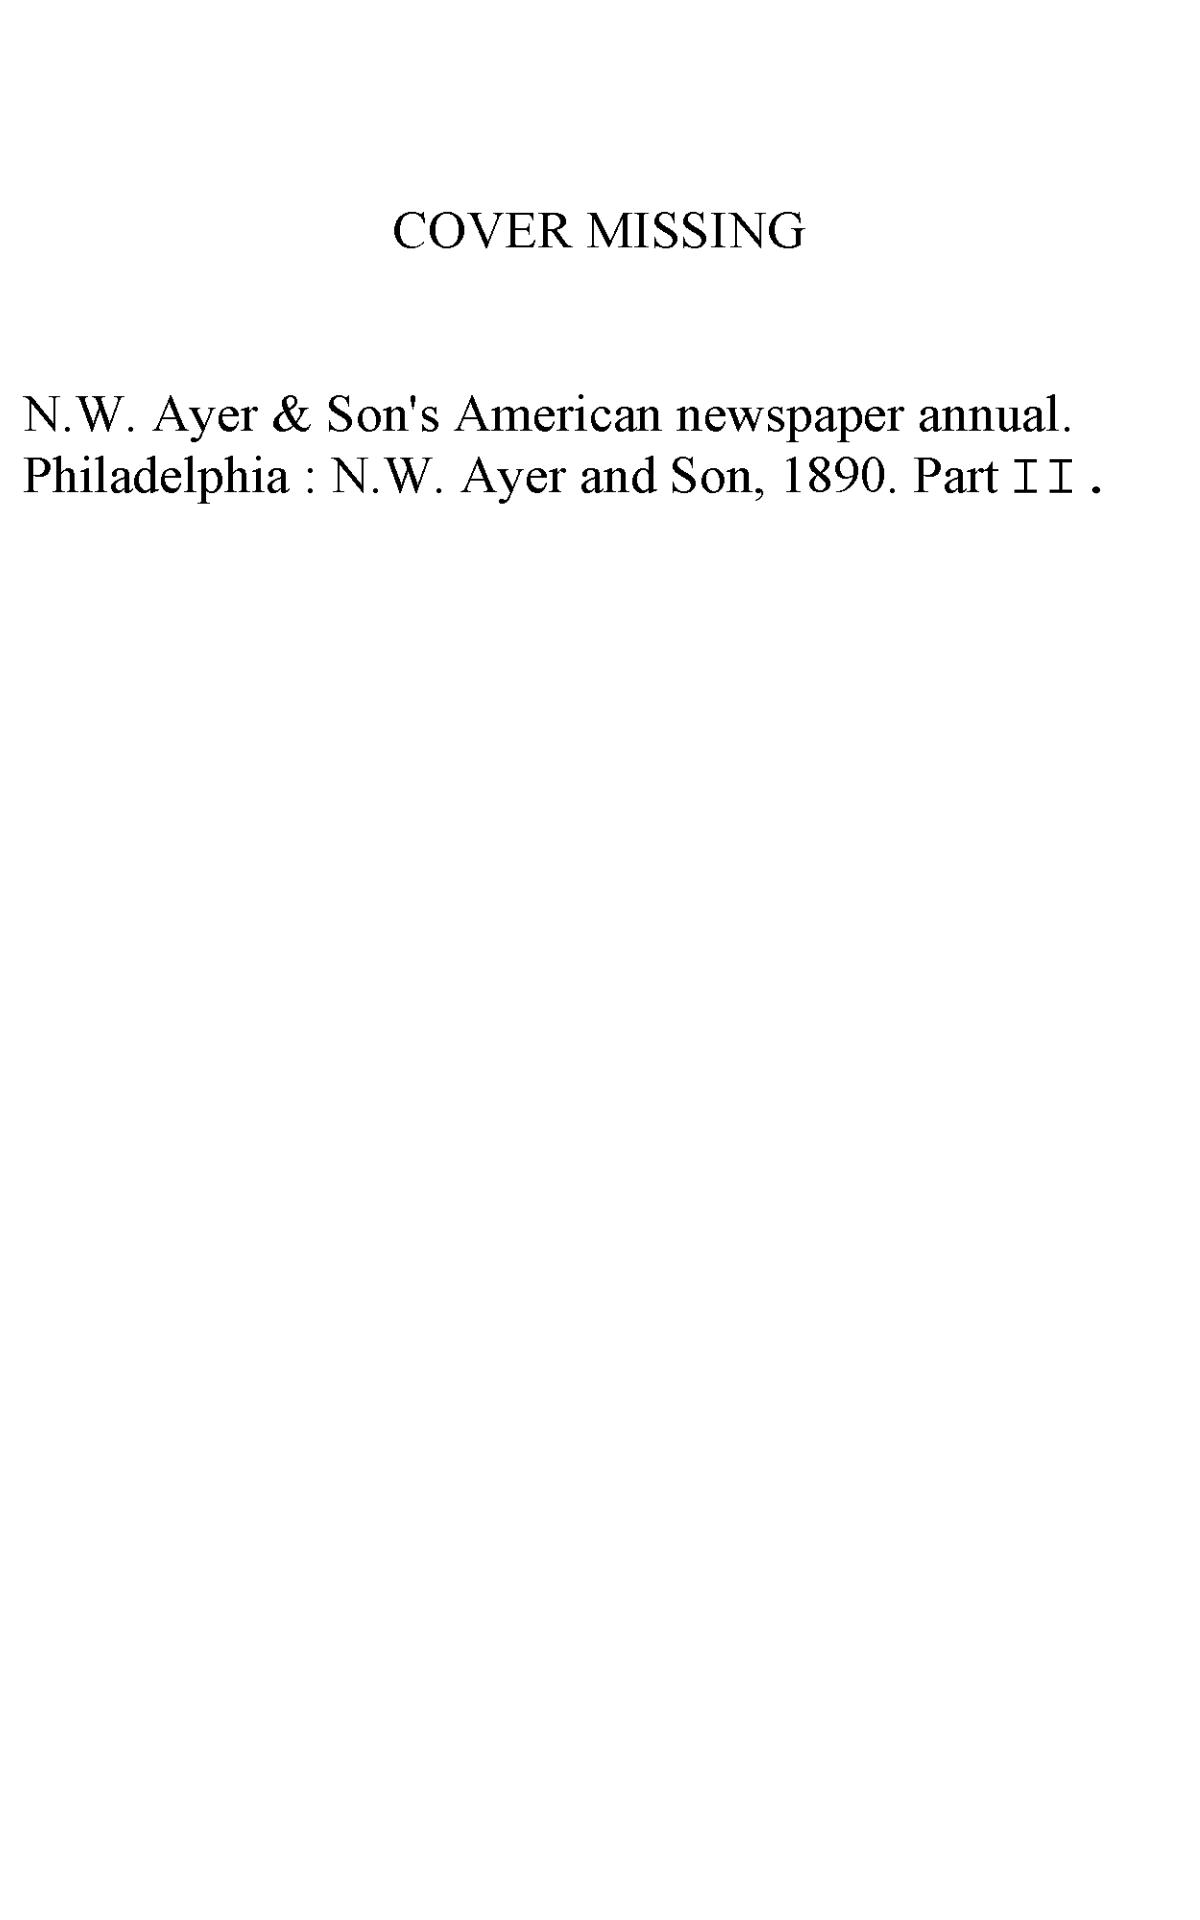 N. W. Ayer & Son's American Newspaper Annual: containing a Catalogue of American Newspapers, a List of All Newspapers of the United States and Canada, 1890, Volume 2                                                                                                      None